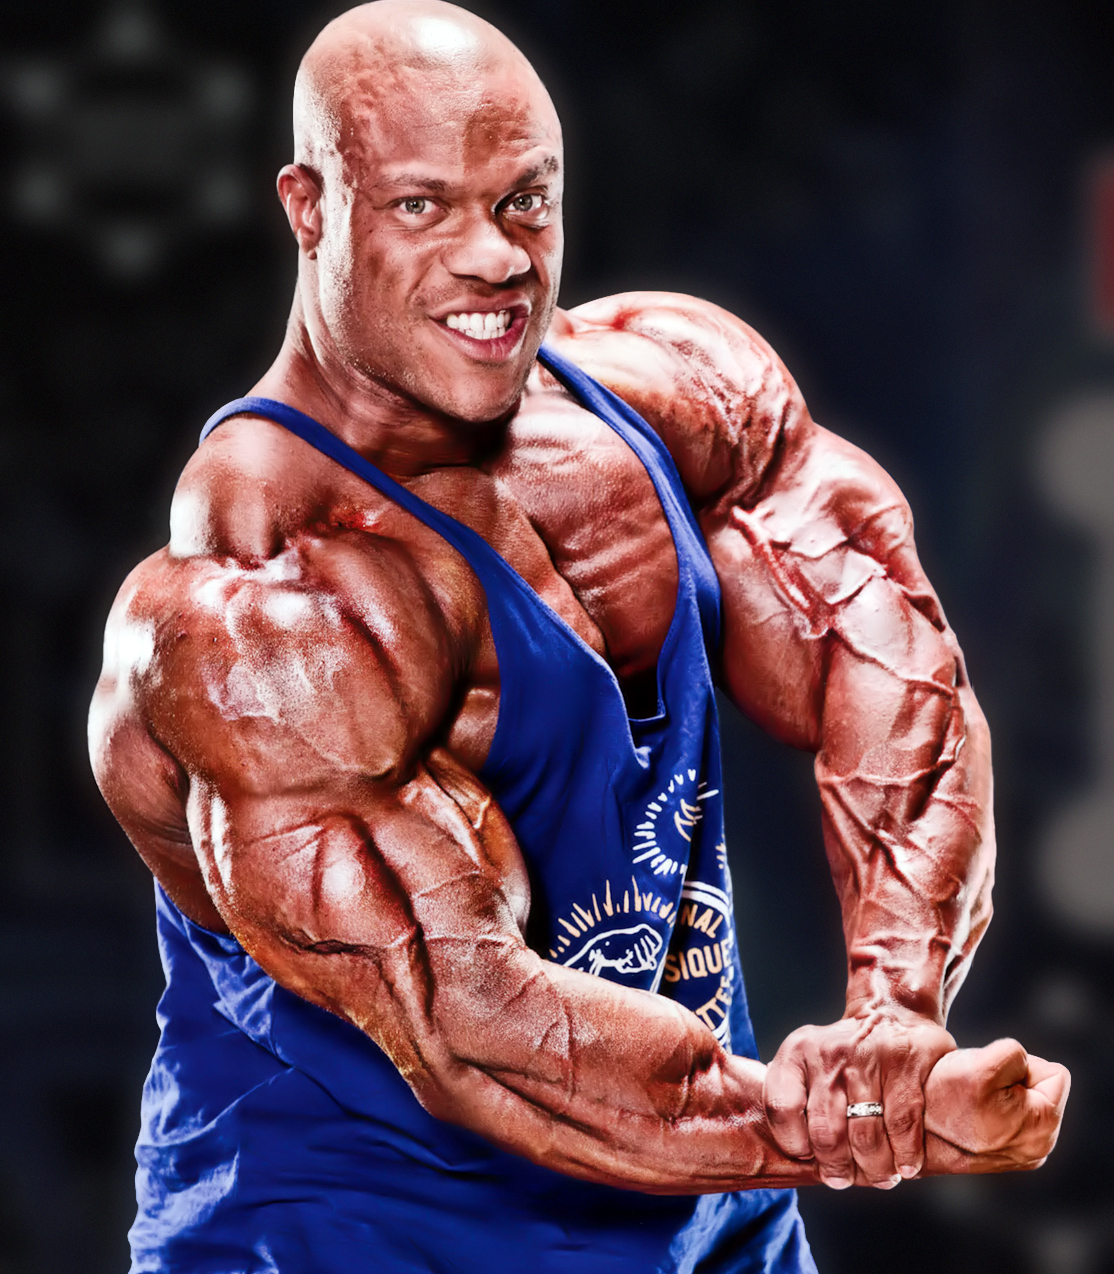 Phil heath 2013